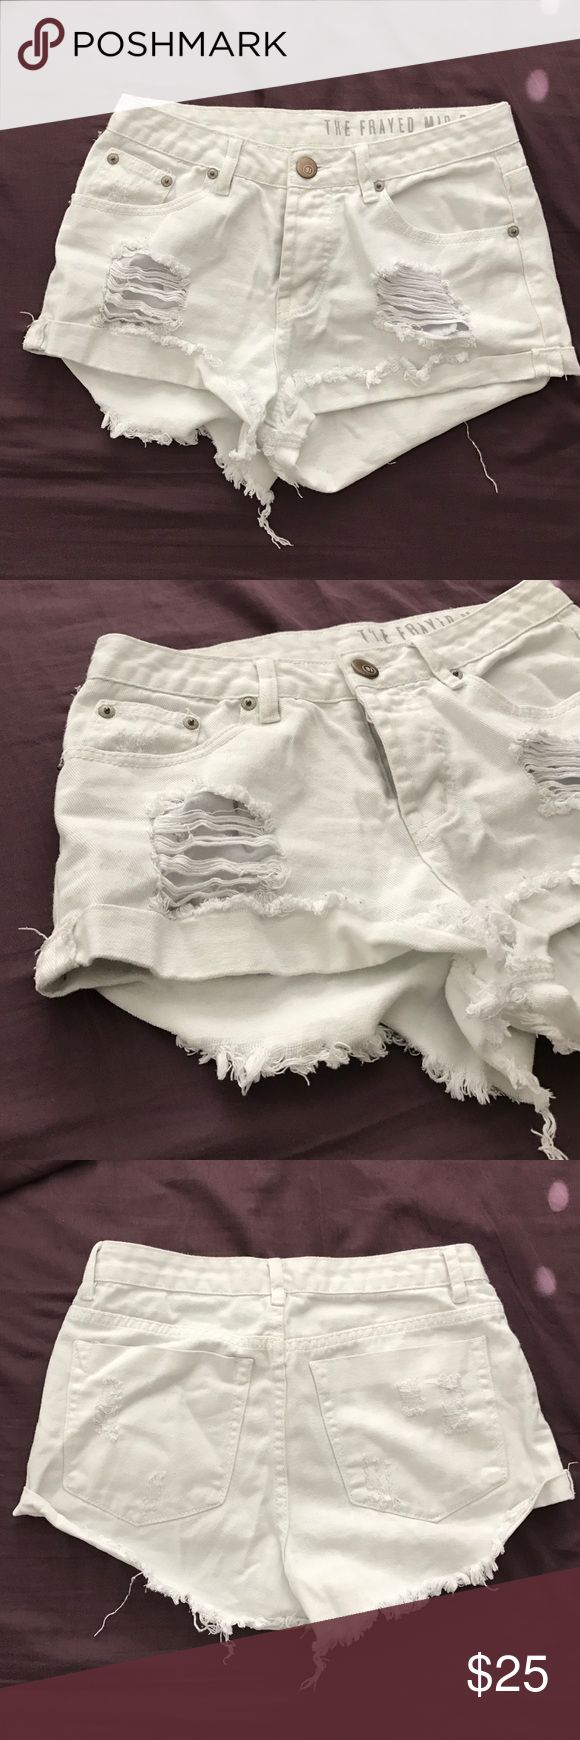 White MidRise Ripped Shorts Size 4 Shorts. Never worn. Perfect for any casual outfit! A perfect staple piece to add to your closet! No trades. Cotton On Shorts Jean Shorts